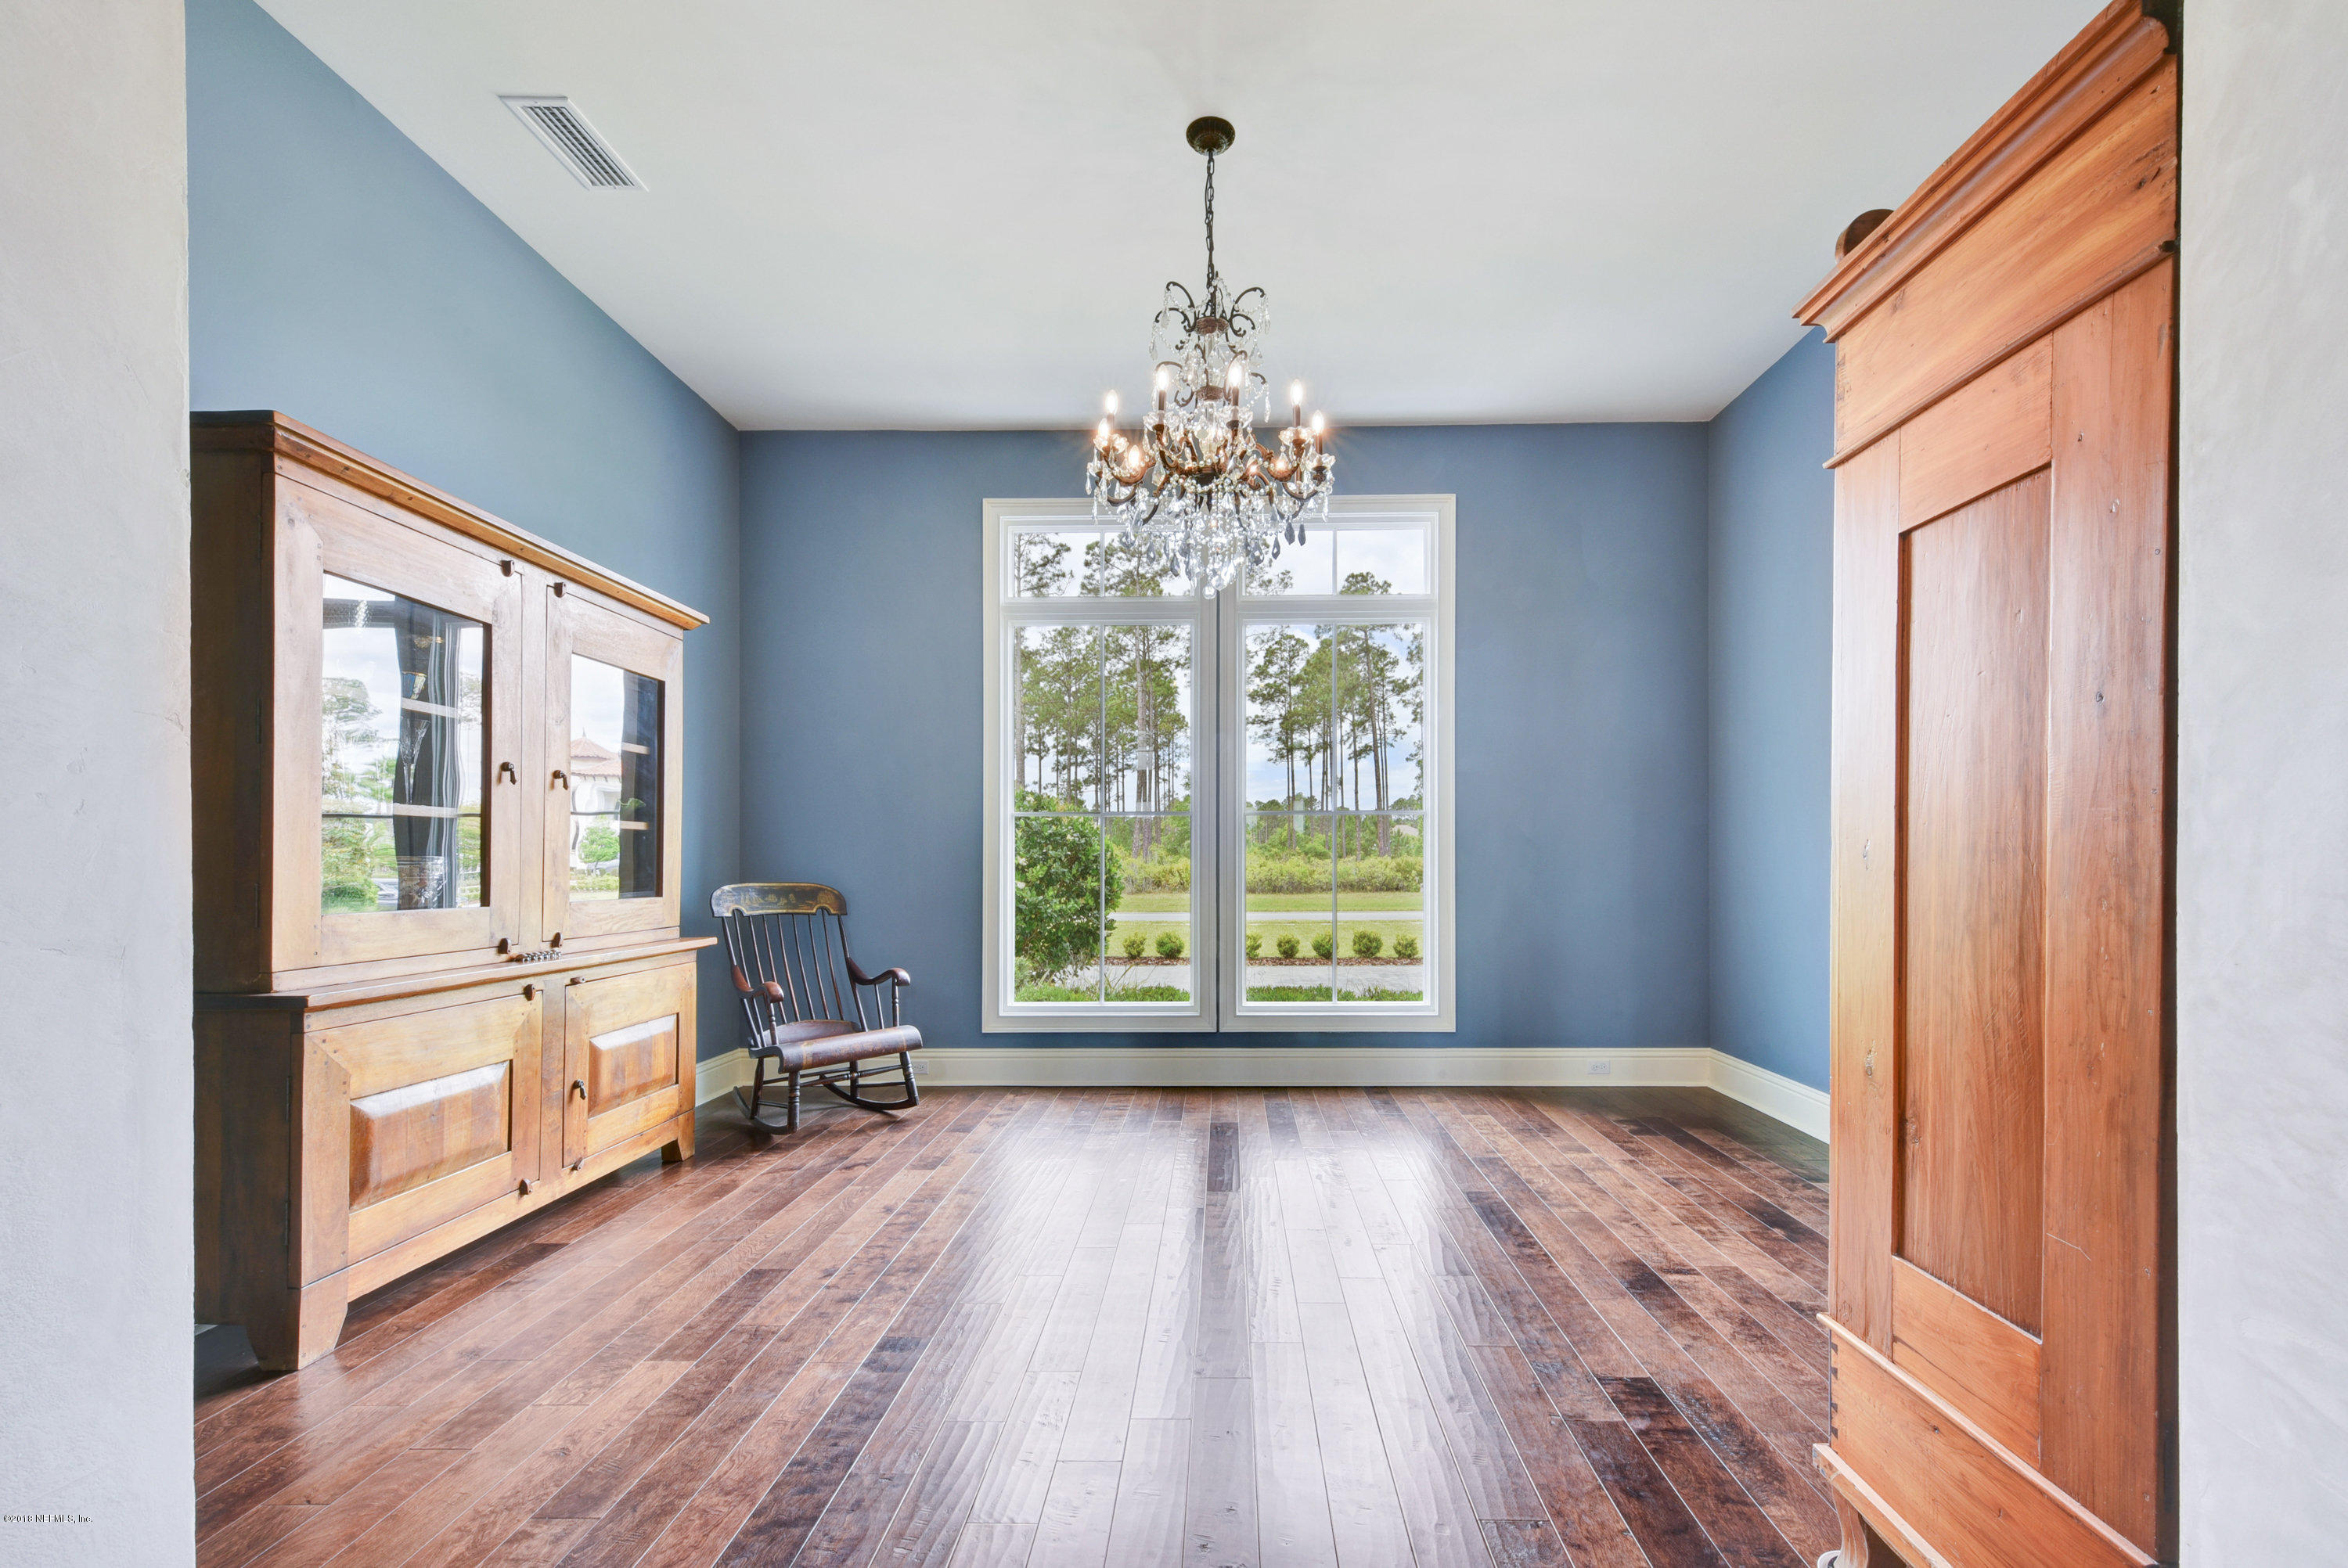 5378 BENTPINE COVE, JACKSONVILLE, FLORIDA 32224, 4 Bedrooms Bedrooms, ,5 BathroomsBathrooms,Residential - single family,For sale,BENTPINE COVE,935280